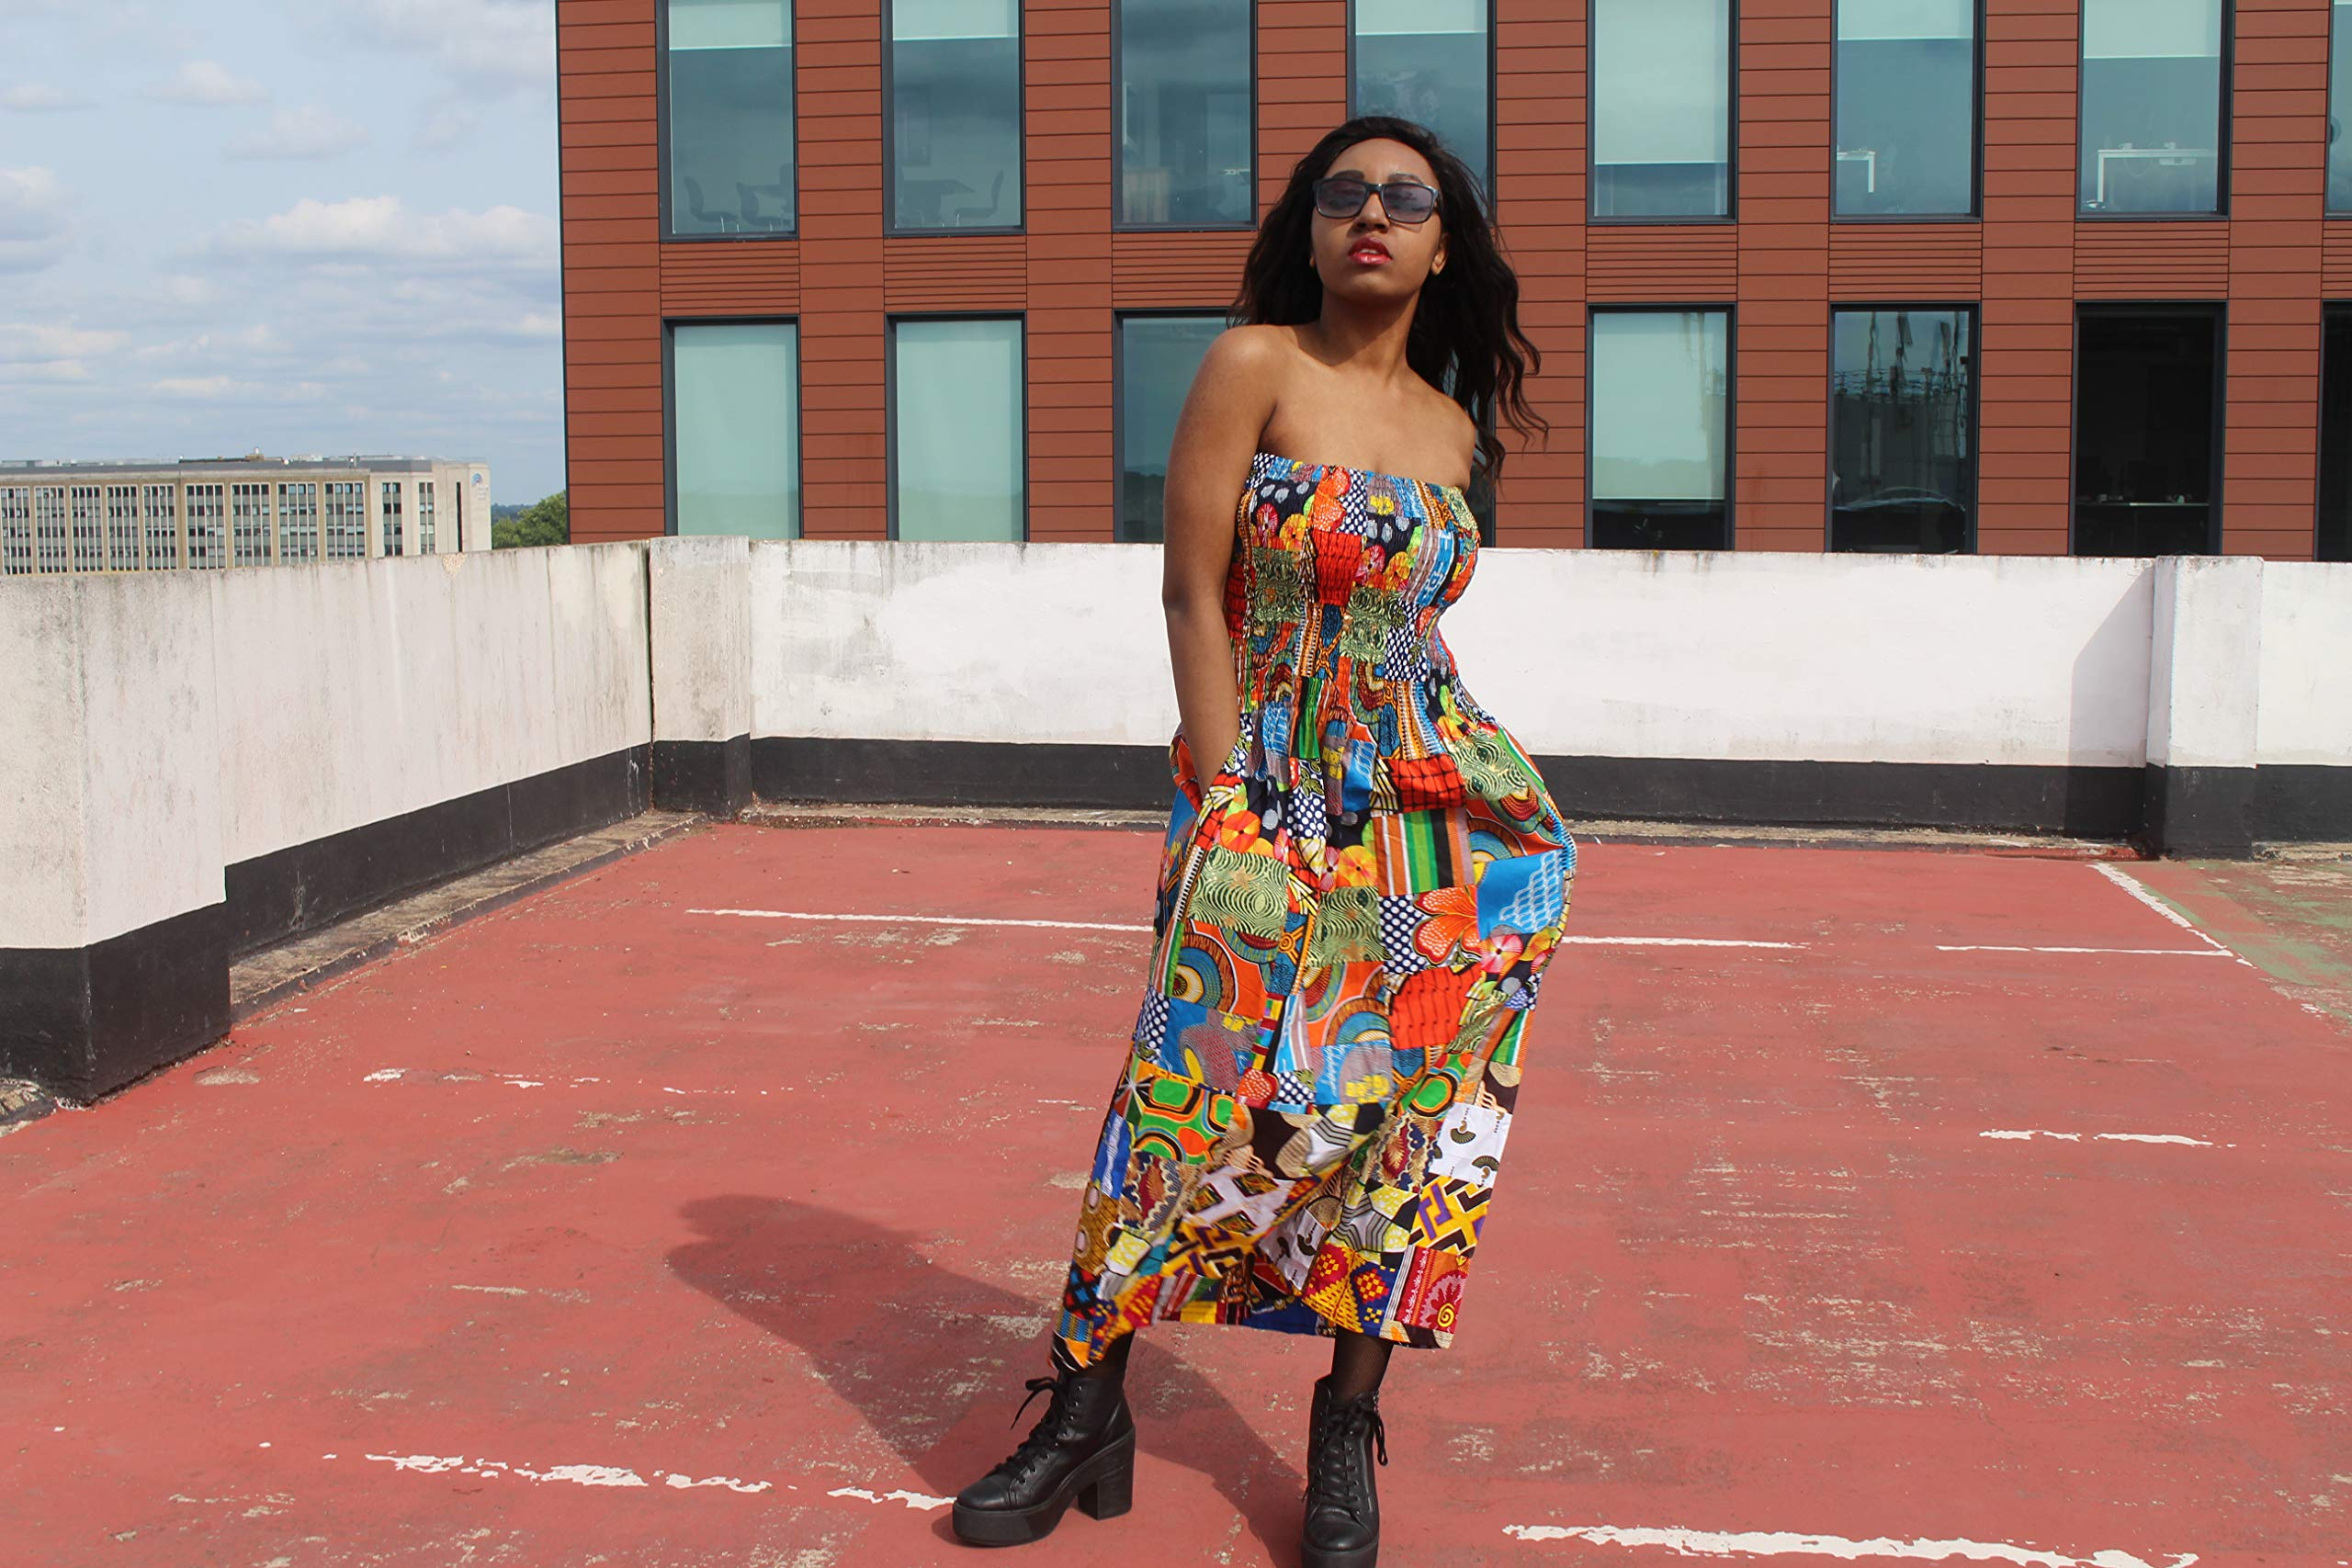 Patchwork Dress African Print Dress Wax Print Dress Festival Dress Bohemian Dress Boho Dress Continent Clothing Ethical Clothing Boho Dress Patterned Dress